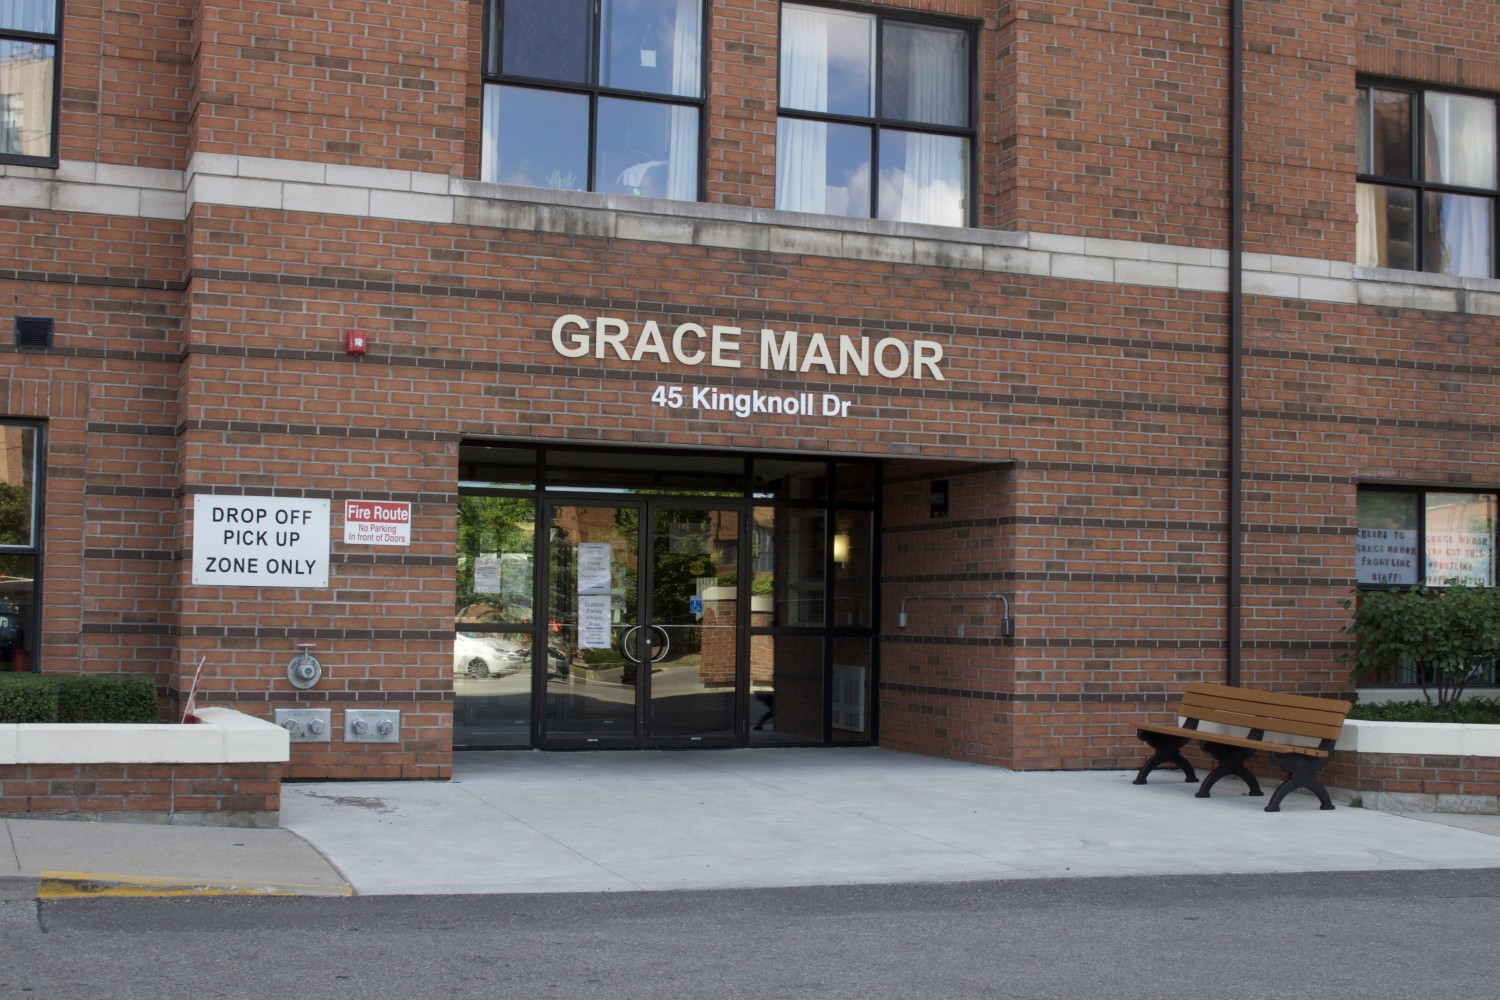 Grace Manor back on its feet, but administrative gaps remain a concern